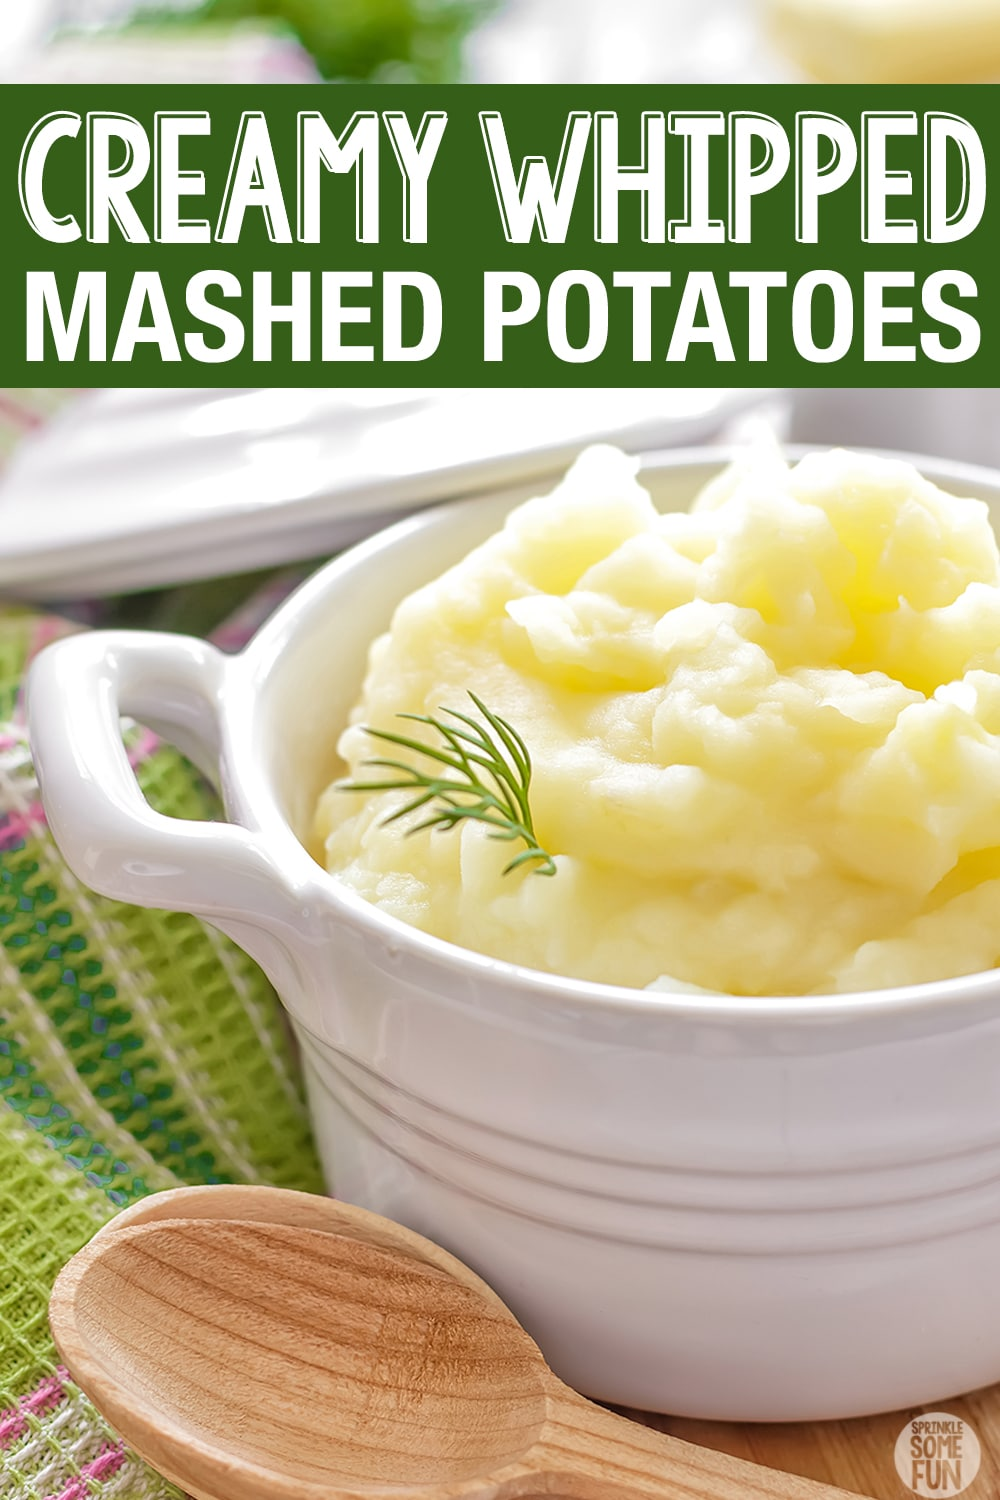 Buttery and creamy whipped potatoes